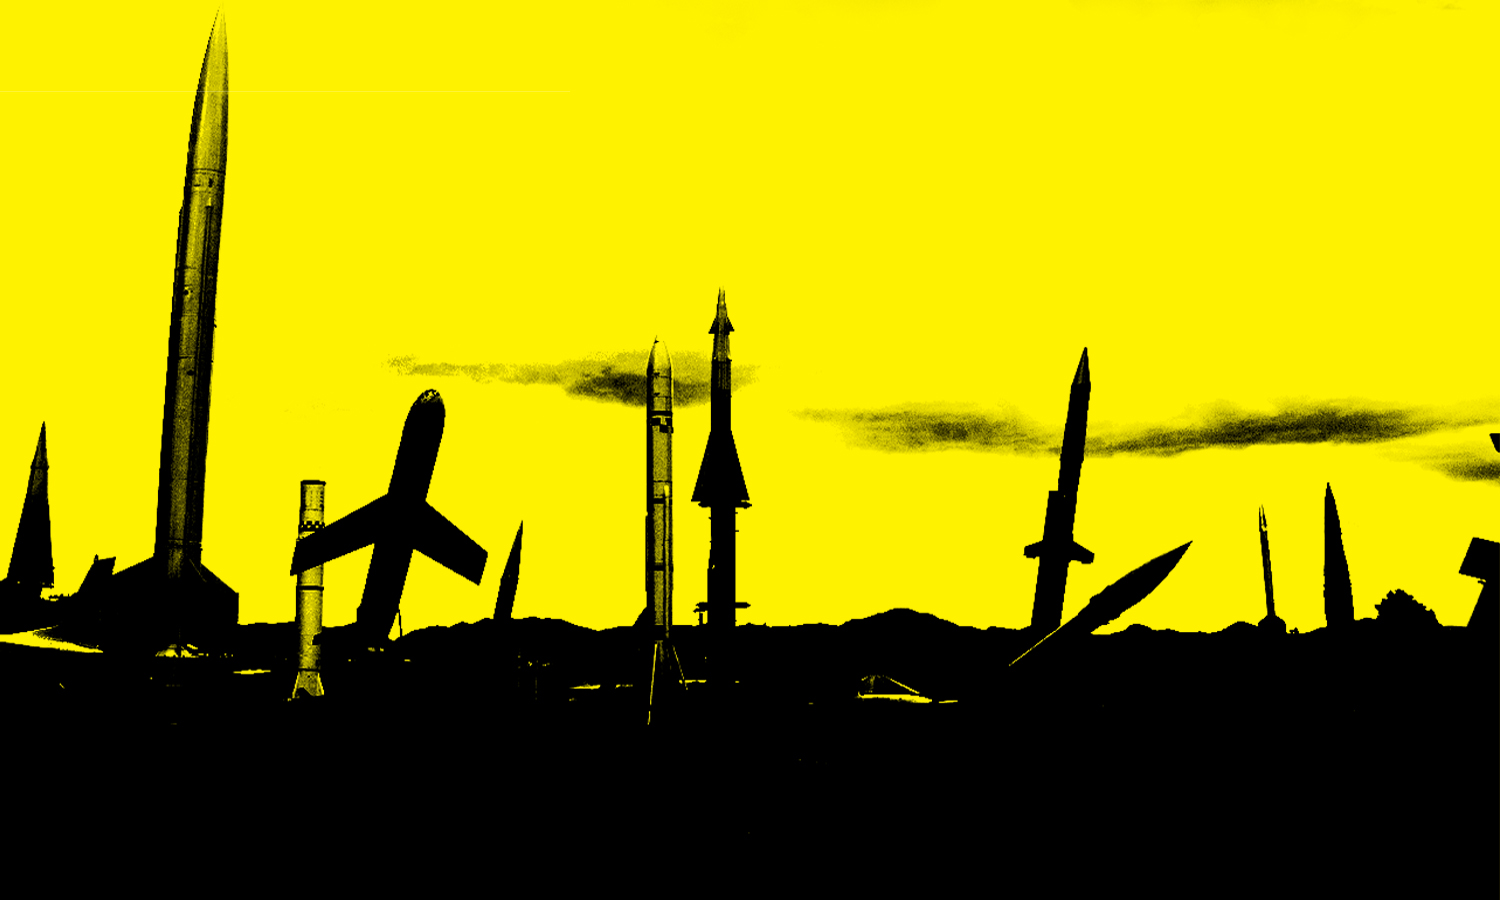 A spiky, synthetic landscape silhouetted in black and built from collaged images of missiles and bomber planes rises against a yellow background.